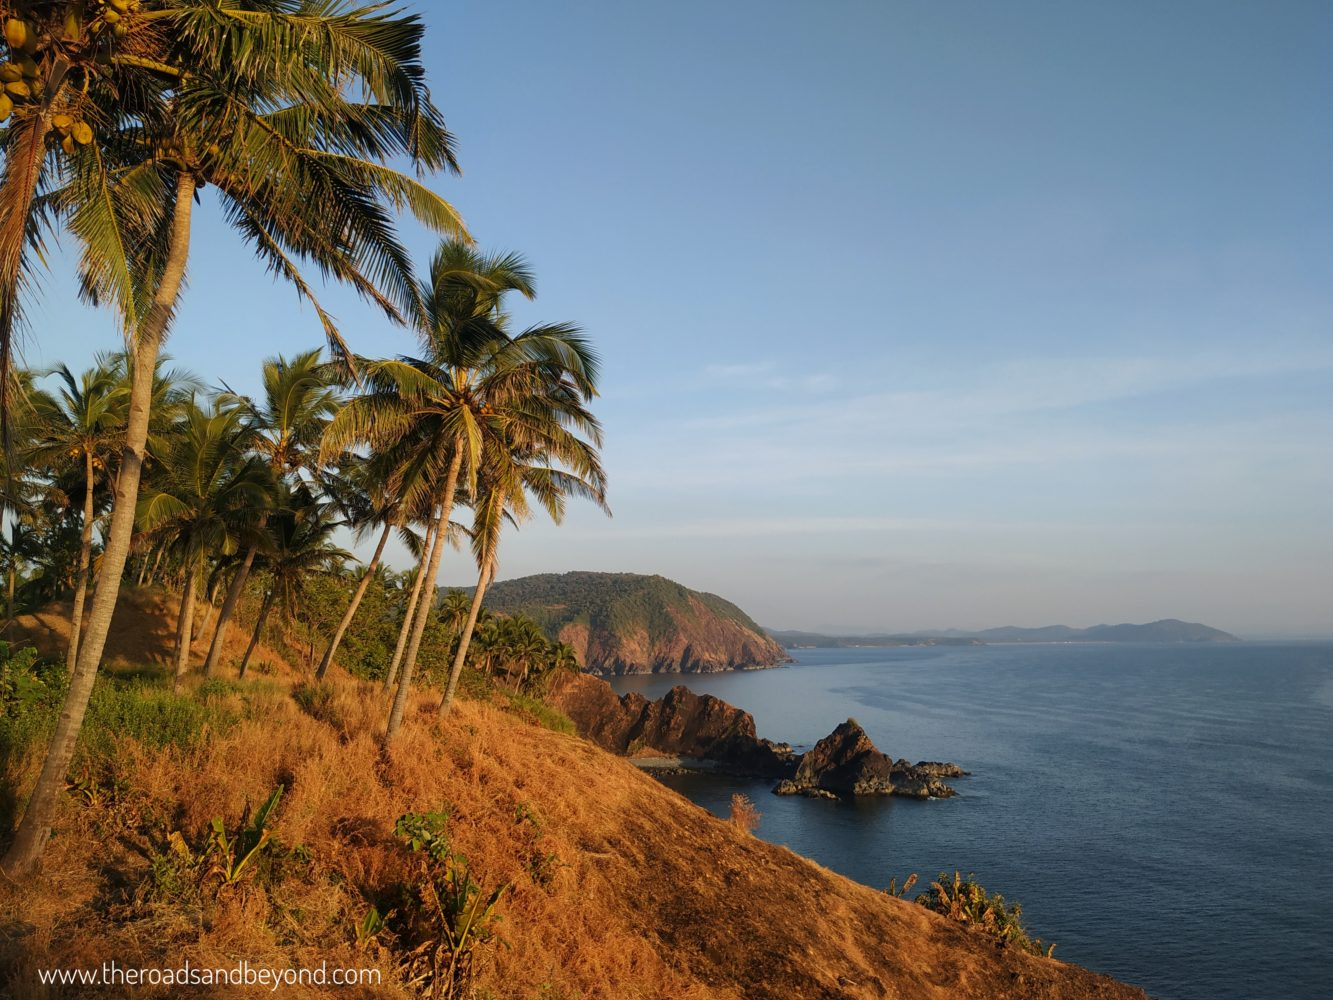 South+goa+%3a+few+days+of+beautiful+sunsets+and+beaches...+%7c